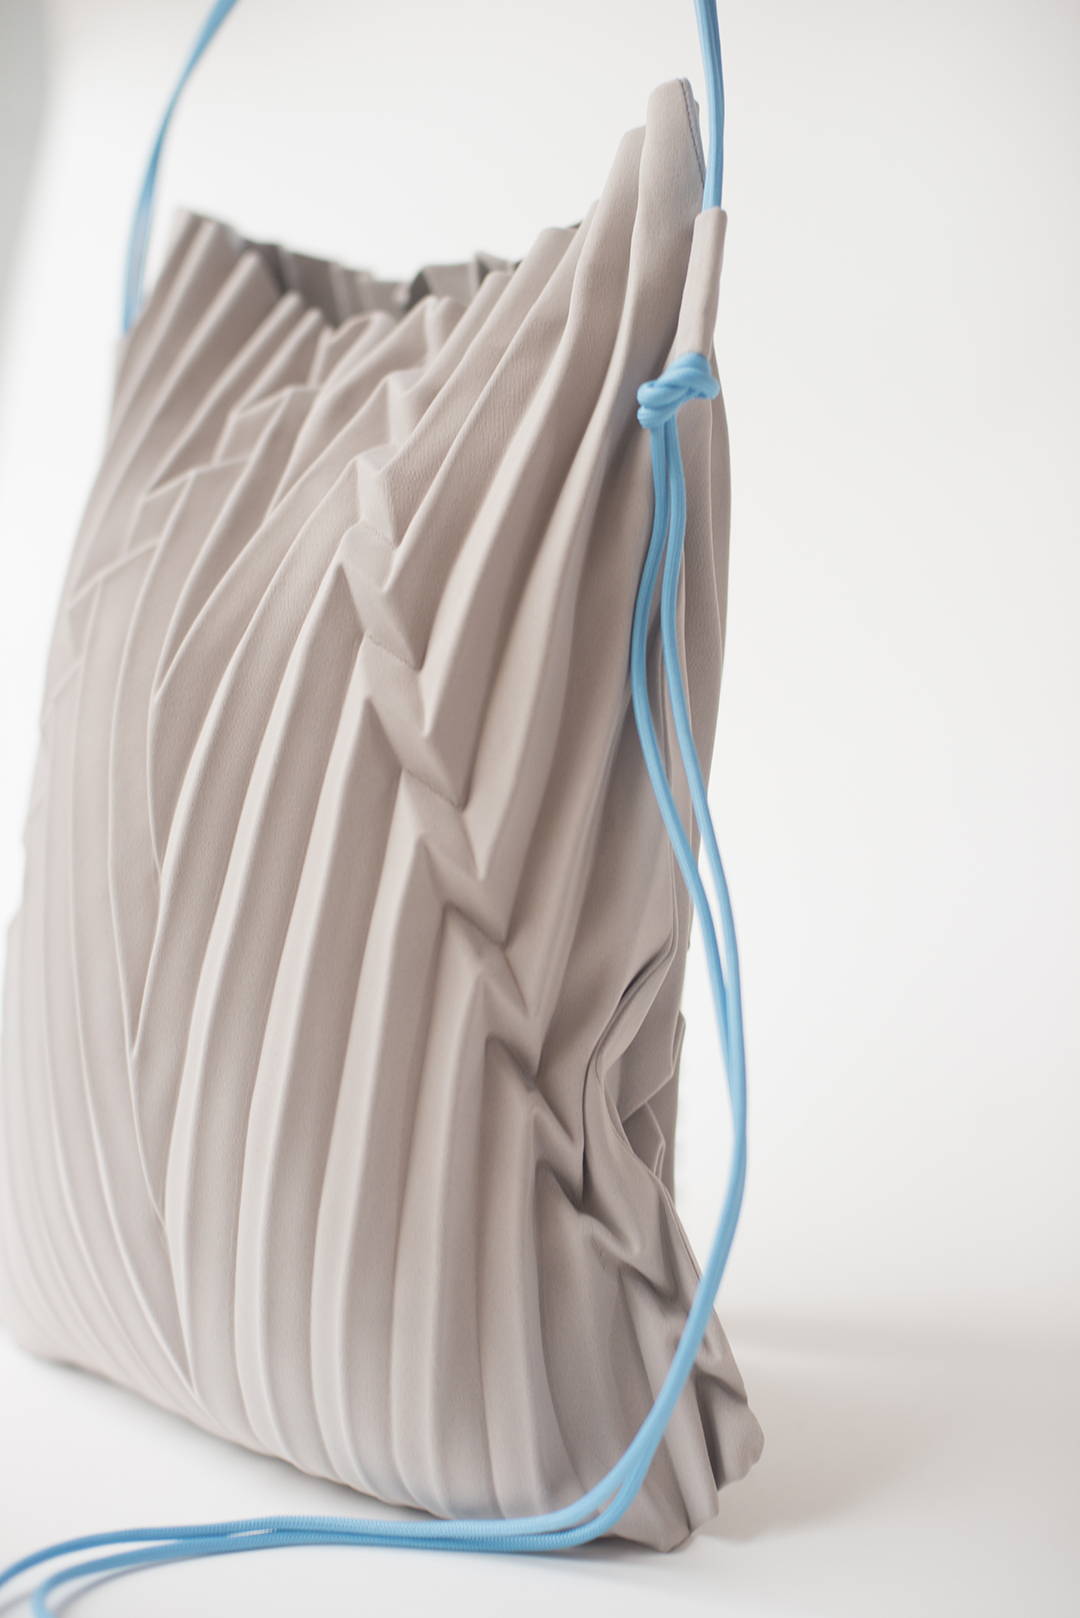 A close-up of a Ginlee Make bag, featuring 'Ivy' pleats. (Photo credit: Ginlee Studio)